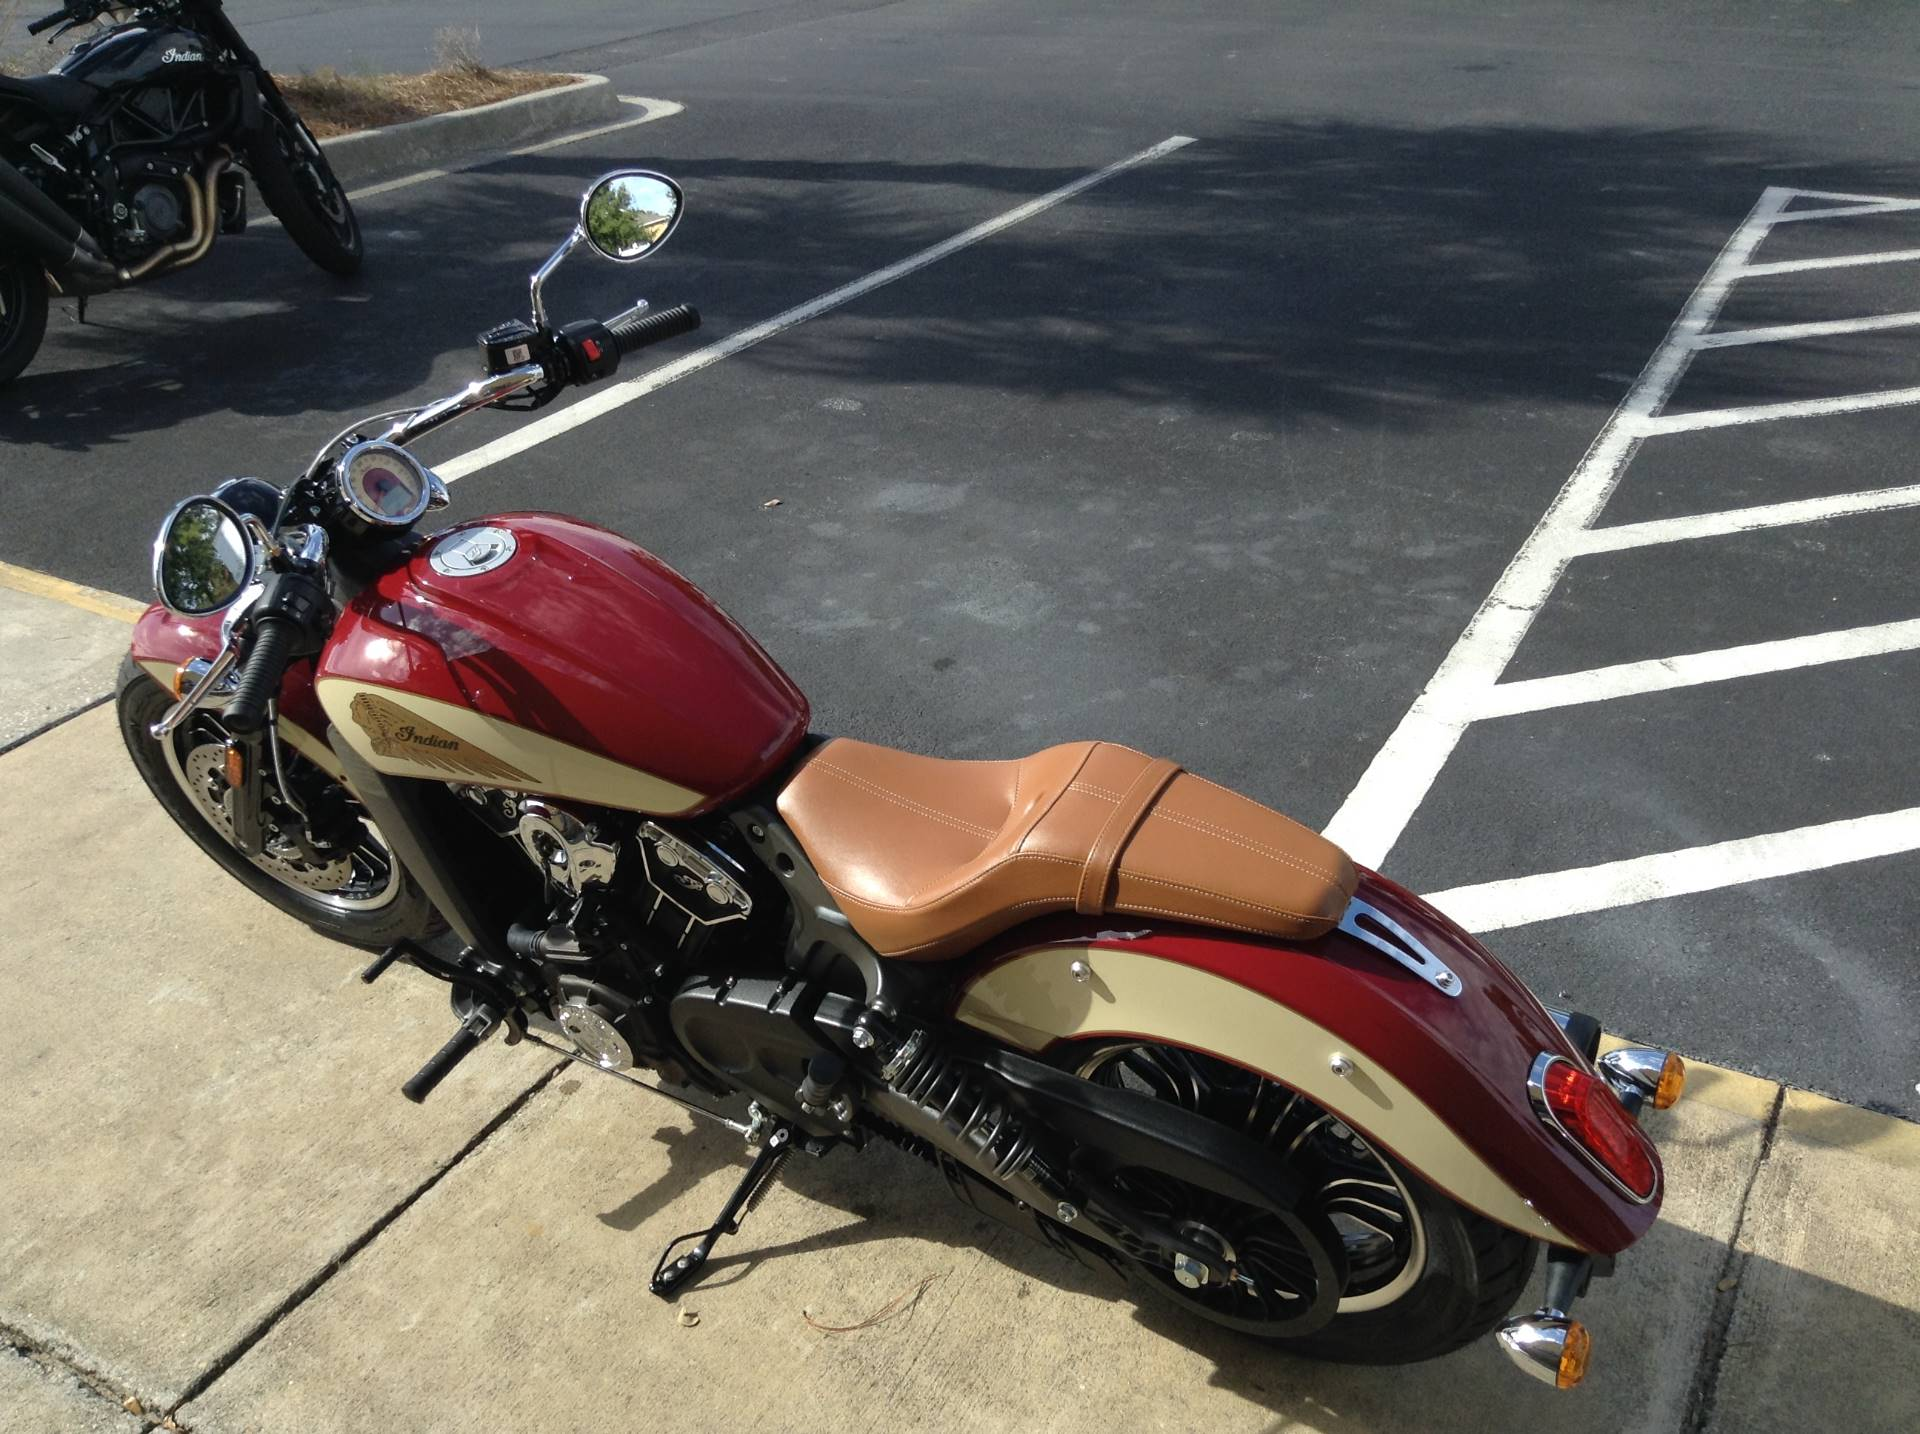 2020 Indian SCOUT ABS in Panama City Beach, Florida - Photo 10